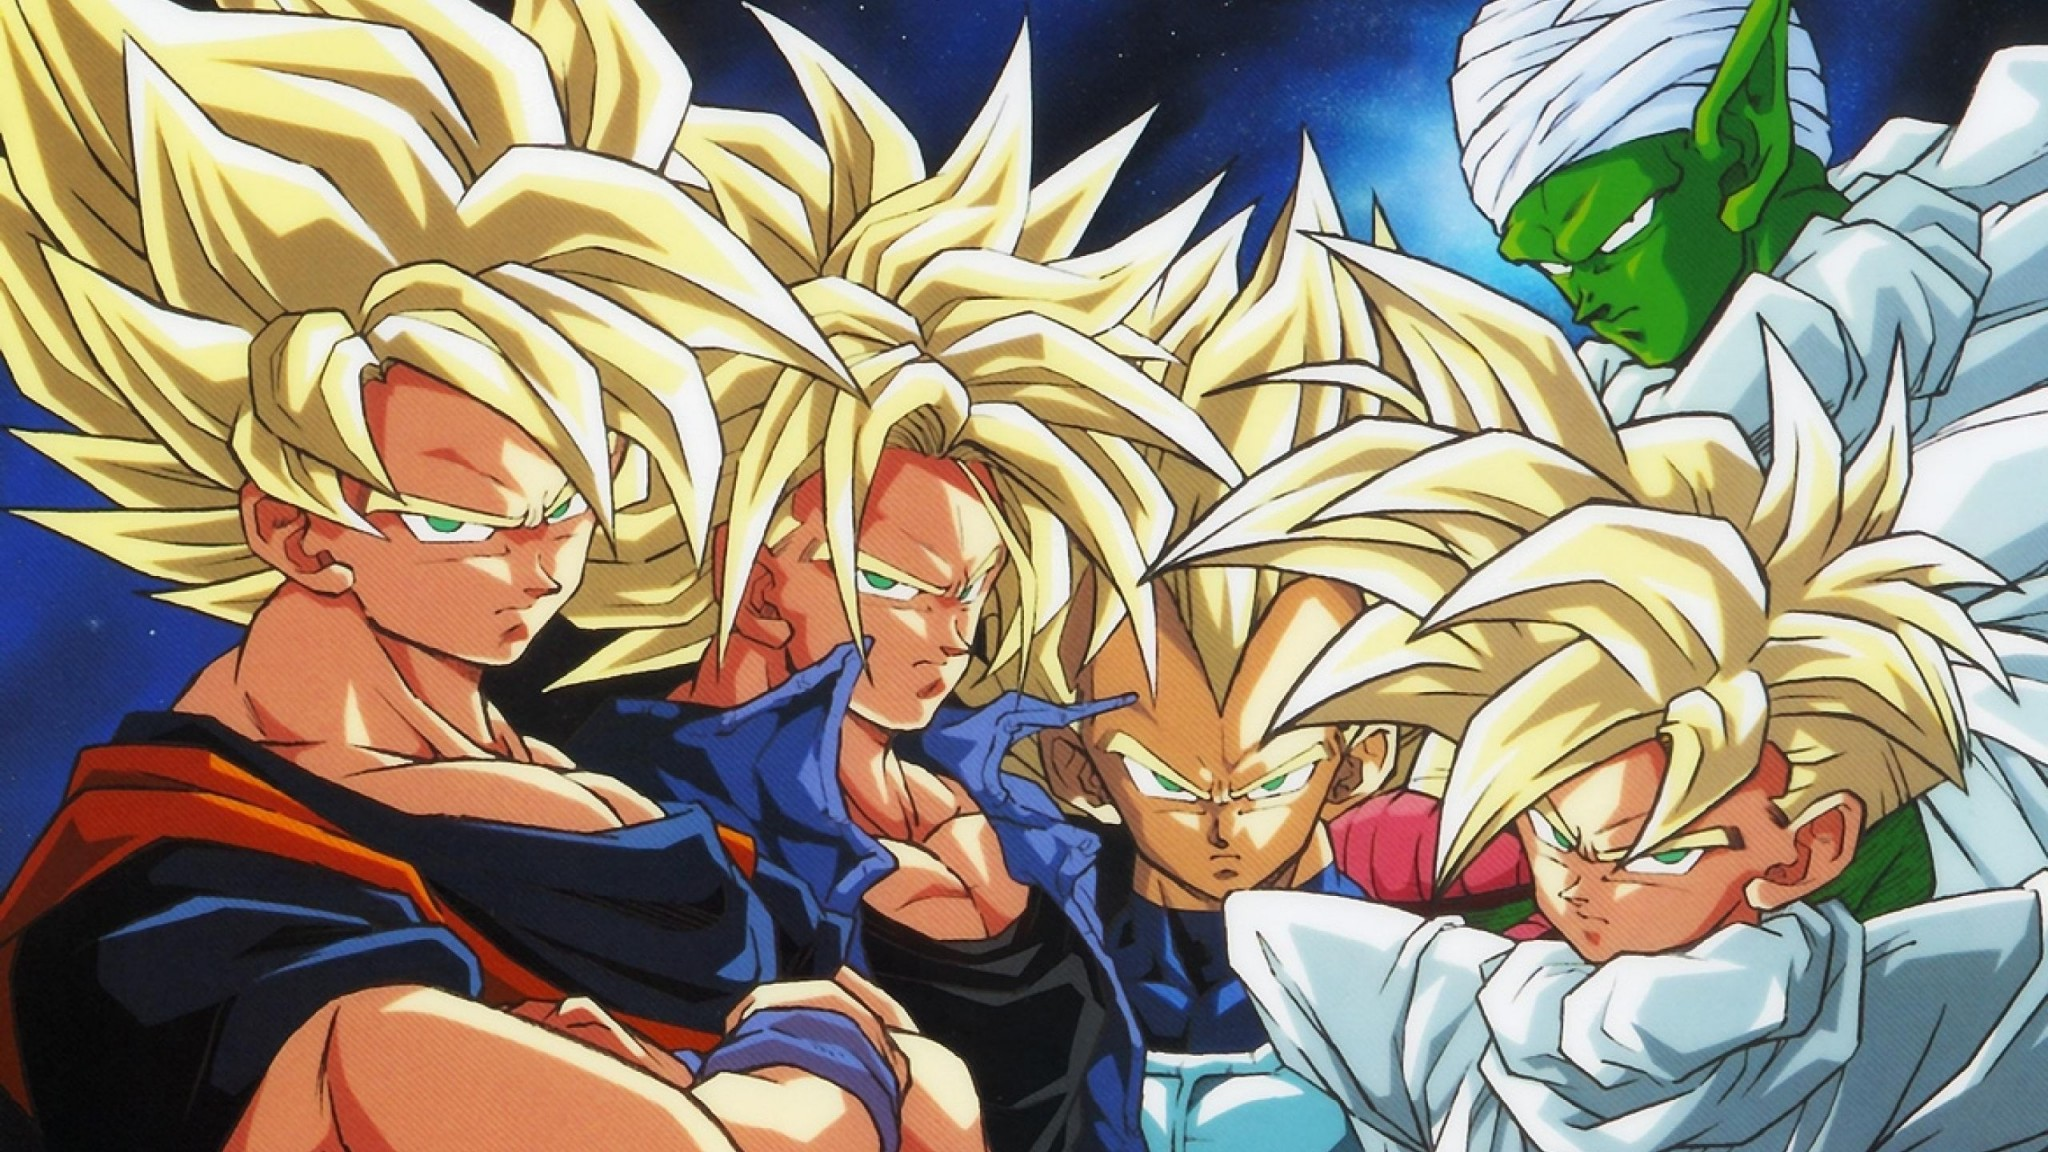 Gohan Hd Wallpaper Posted By Michelle Walker